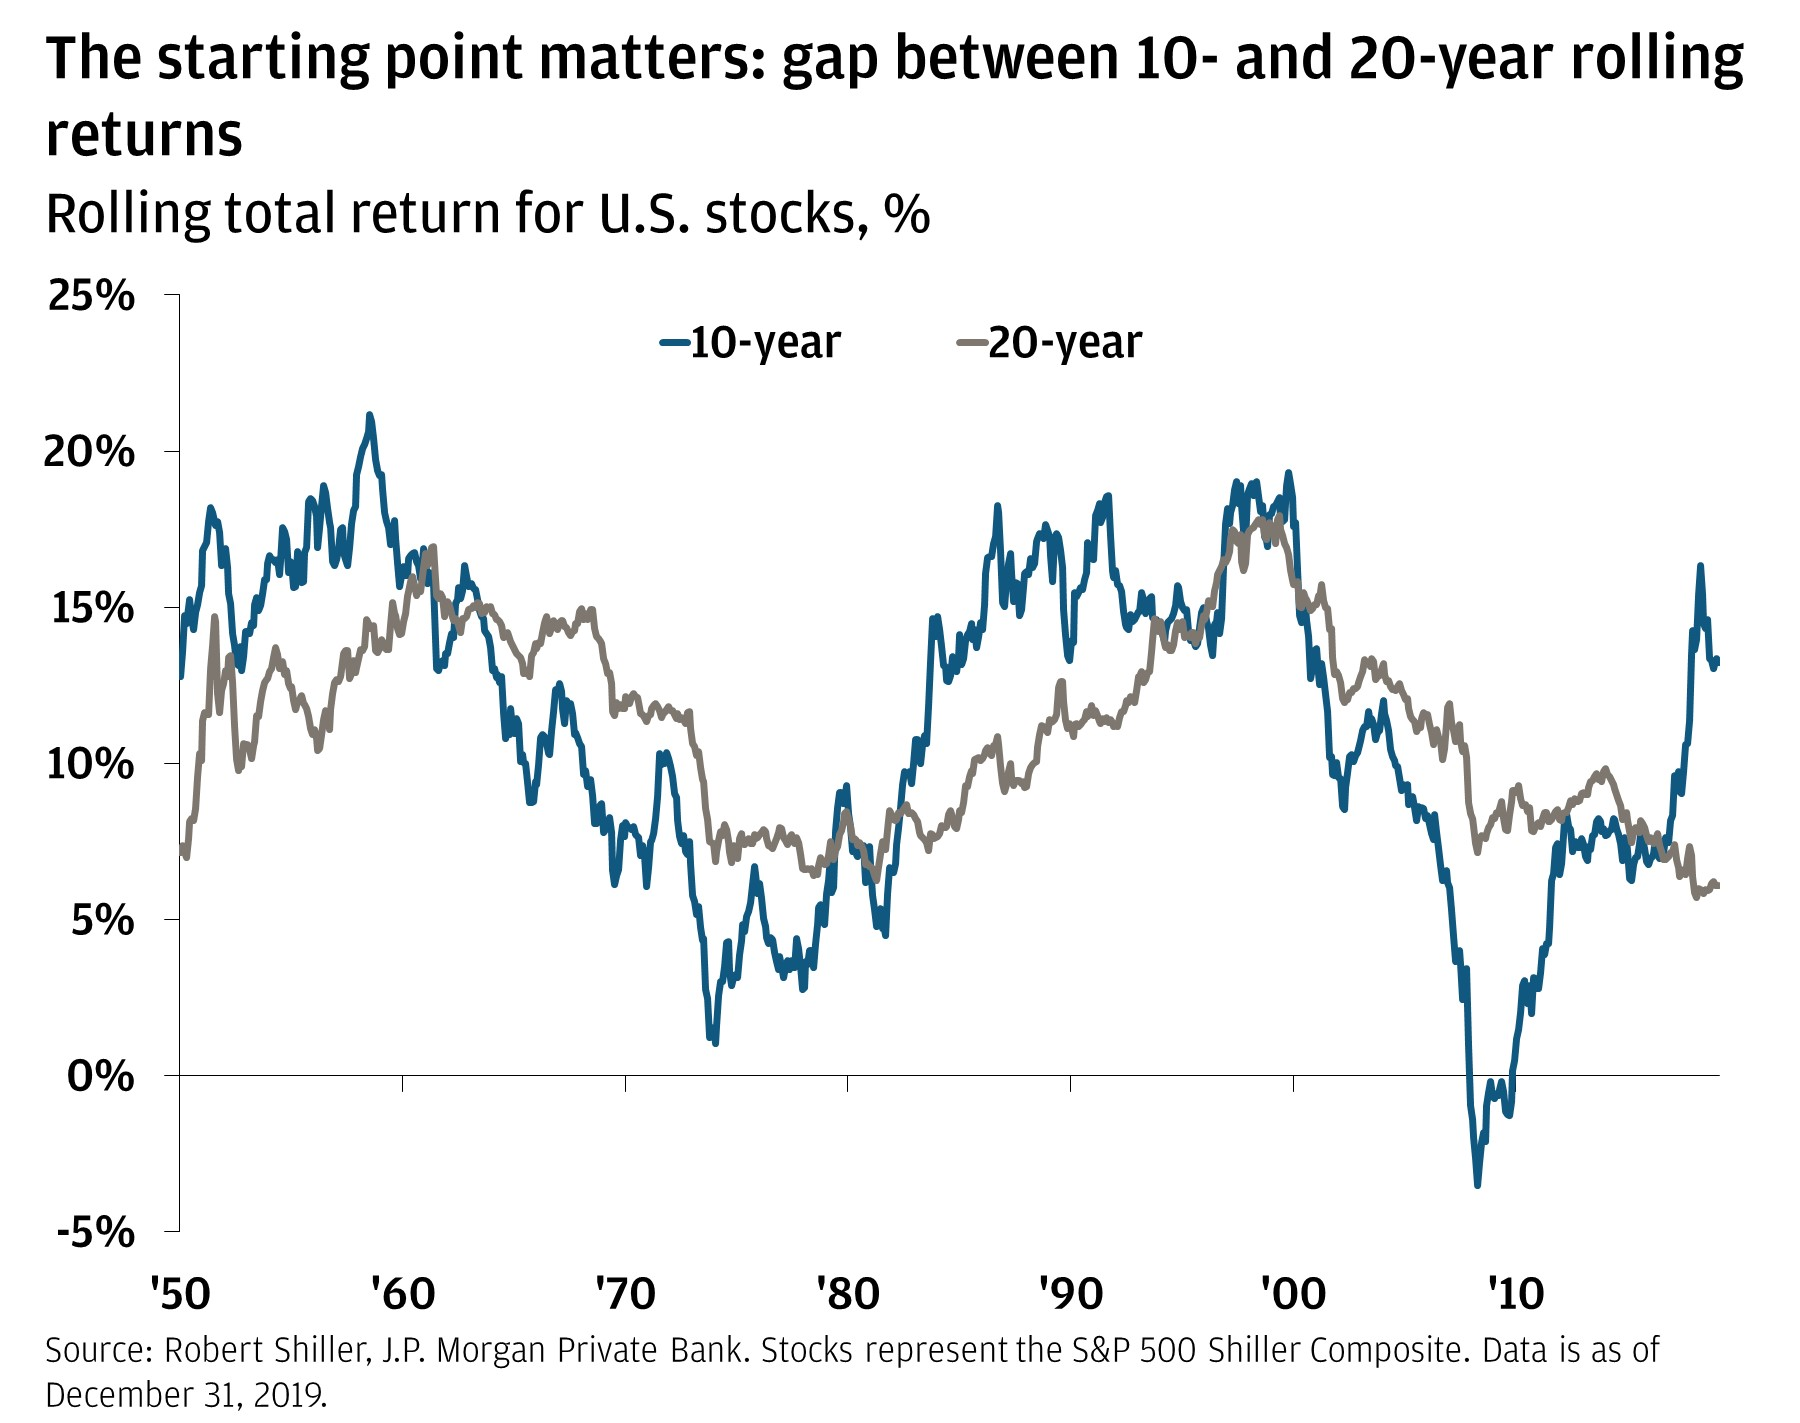 The line chart shows two lines: the 10-year and 20-year rolling total return percentage for U.S. stocks from 1950 through December 31, 2019.